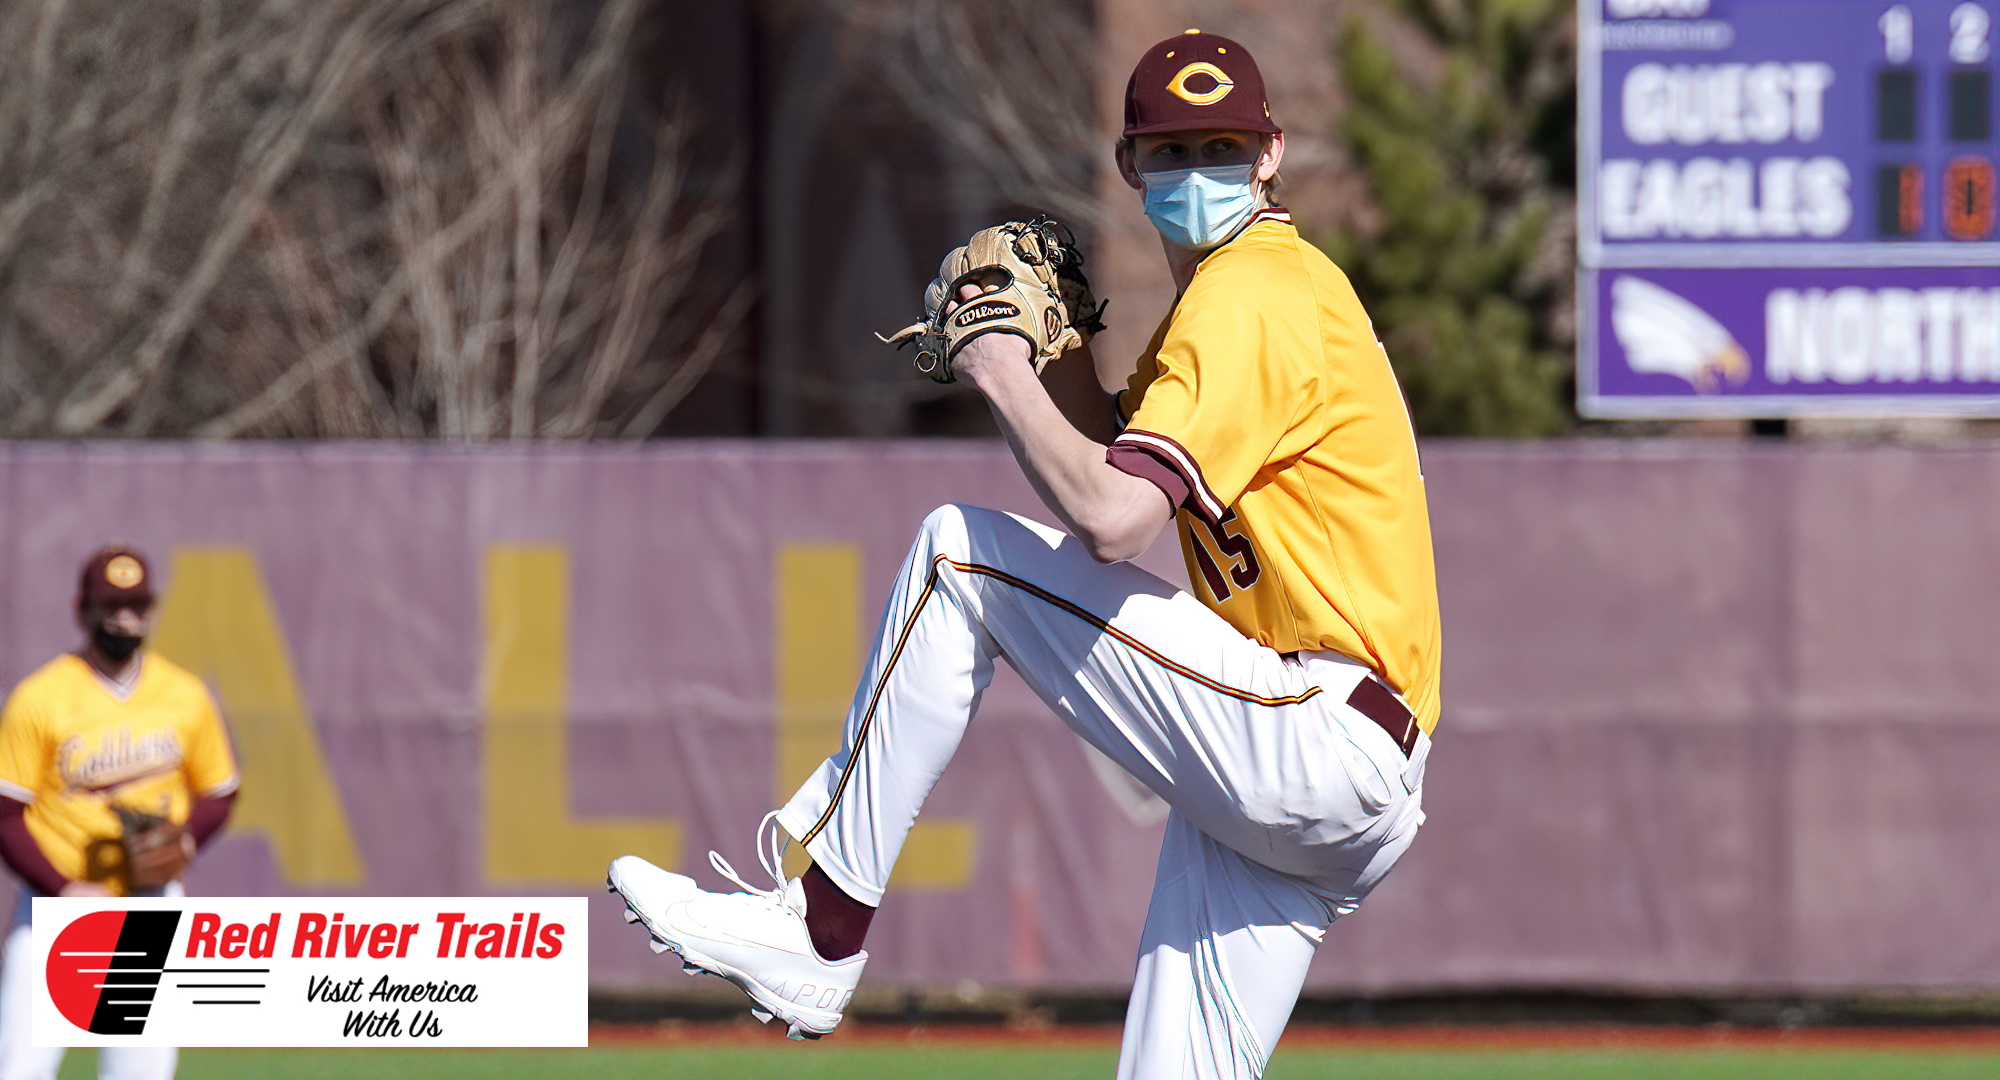 Senior Ty Syverson gets ready to deliver a pitch in the Cobbers' 10-2 win over Crown in Game 1. Syverson struck out nine for his second straight start and leads the MIAC in Ks. (Pic courtesy of Crown Sports Information).